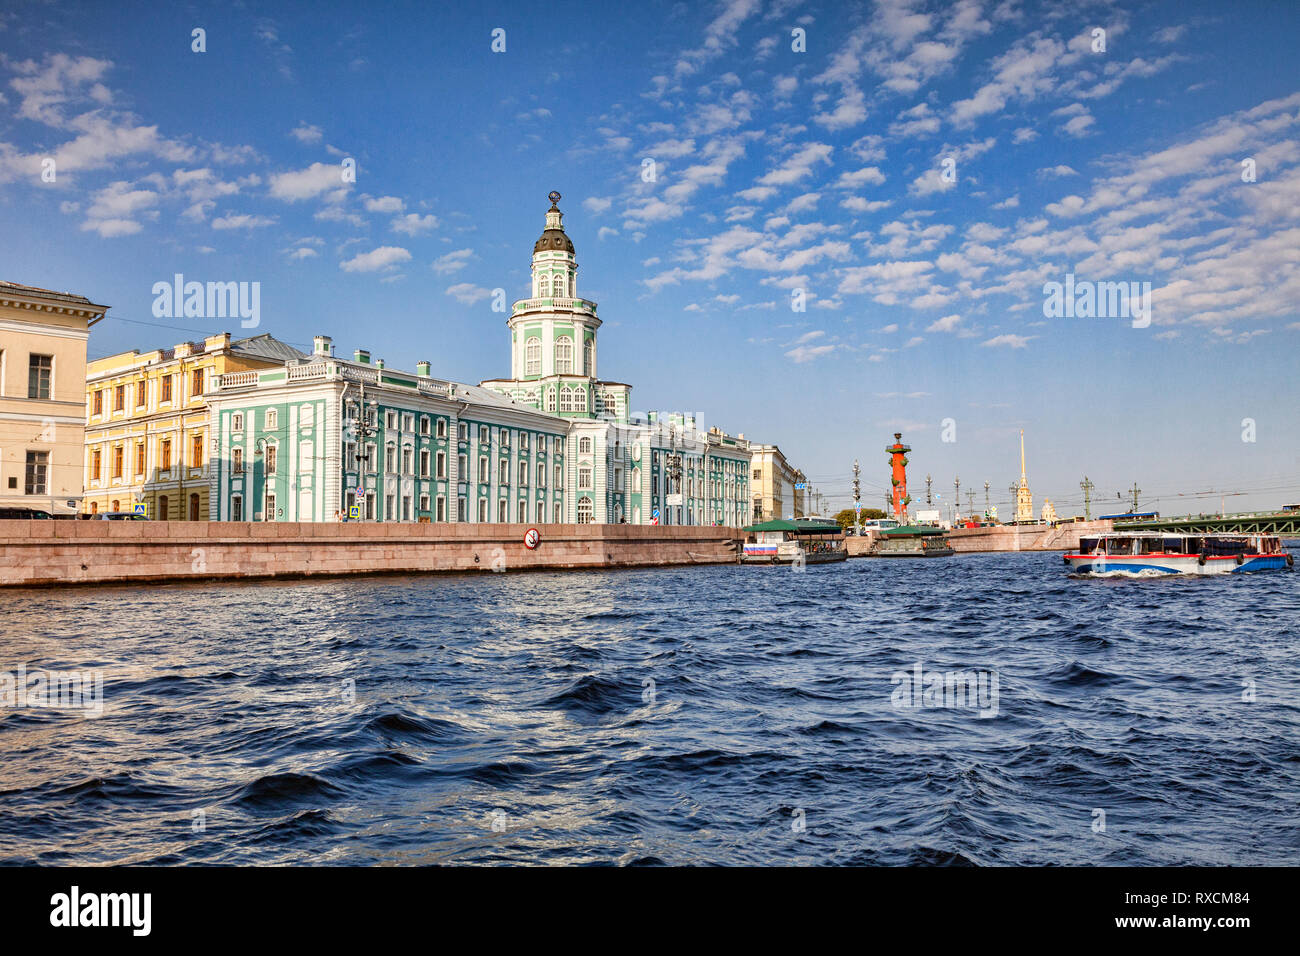 19 September 2018: St Petersburg, Russia - The Kunstkamera, or Kunstkammer Building which hosts the Peter the Great Museum of Anthropology and Ethnogr - Stock Image